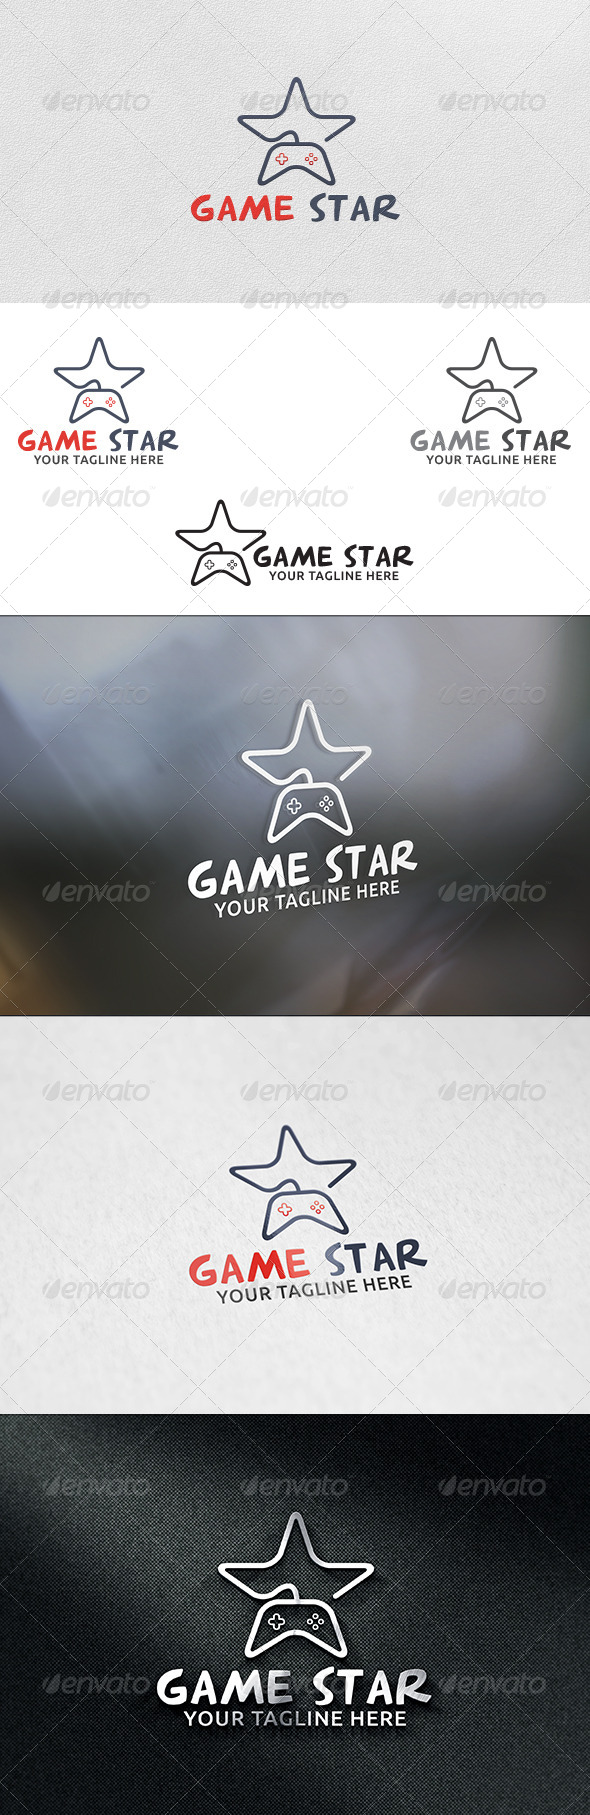 GraphicRiver Game Star Logo Template 6068713